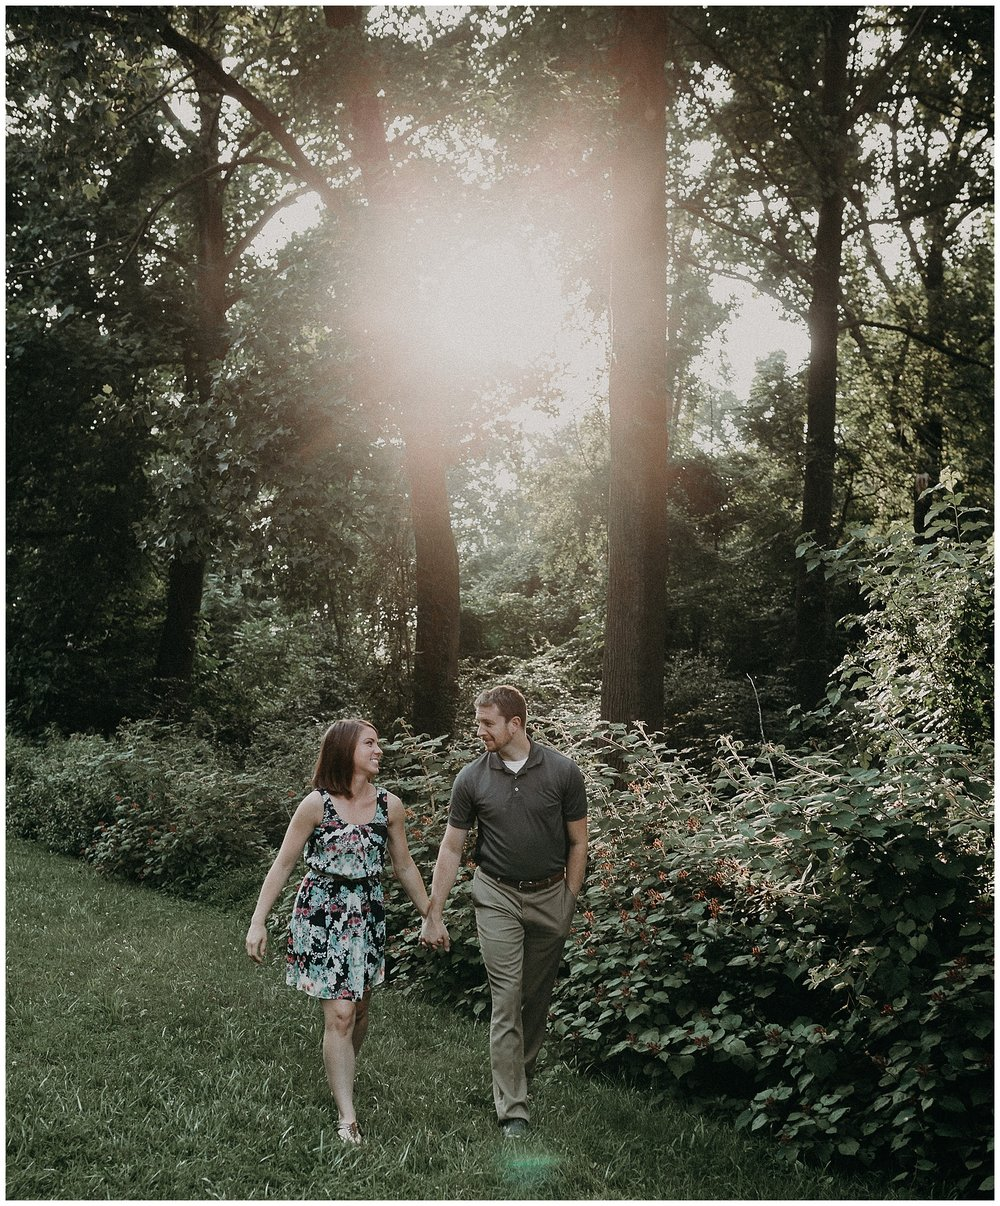 Summer sunset fun and loving Engagement Session at Pinnacle Overlook in Holtwood, Lancaster County Pennsyovania_0152.jpg